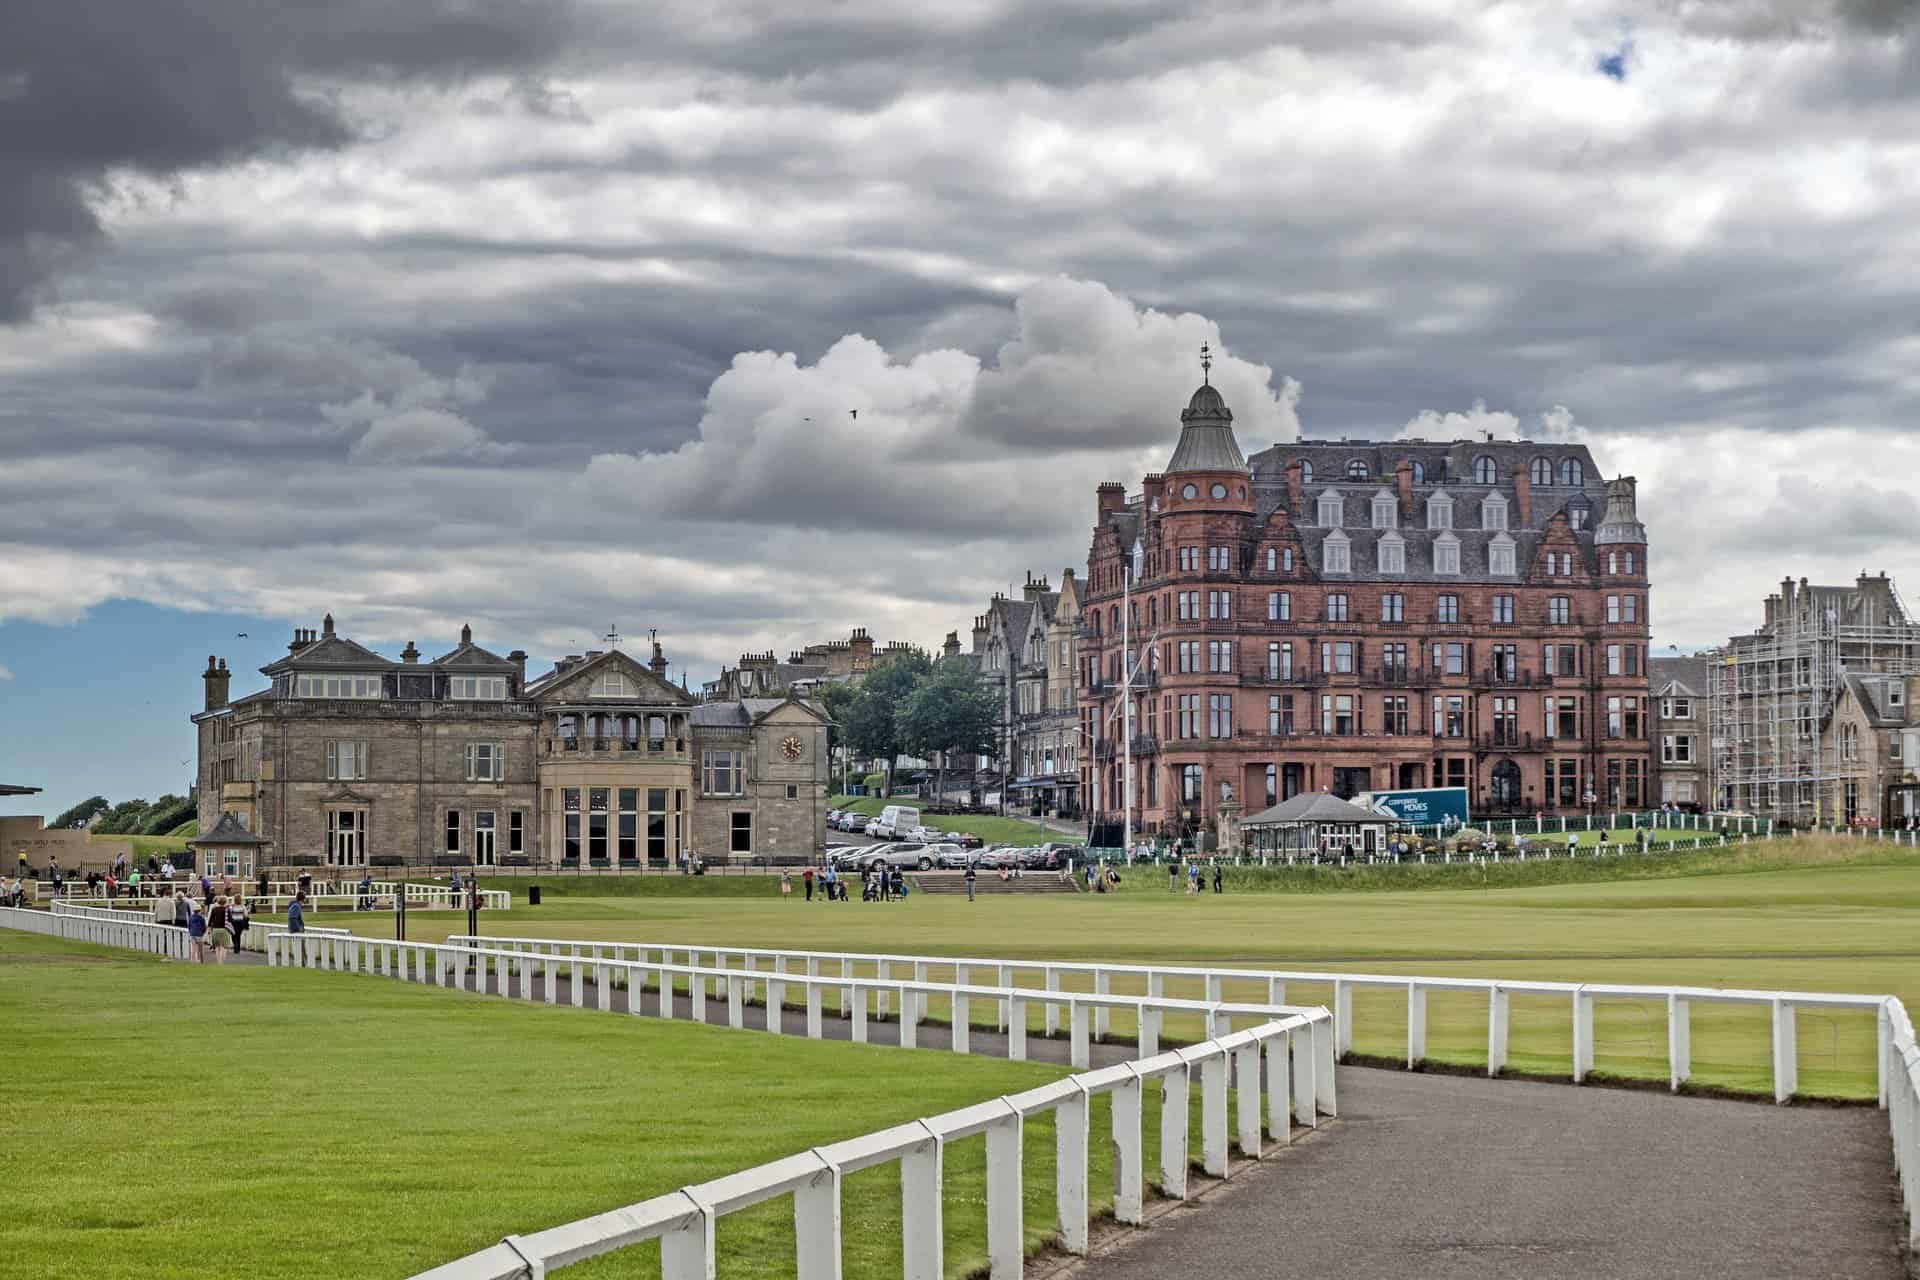 The view across The Old Course, St Andrews,